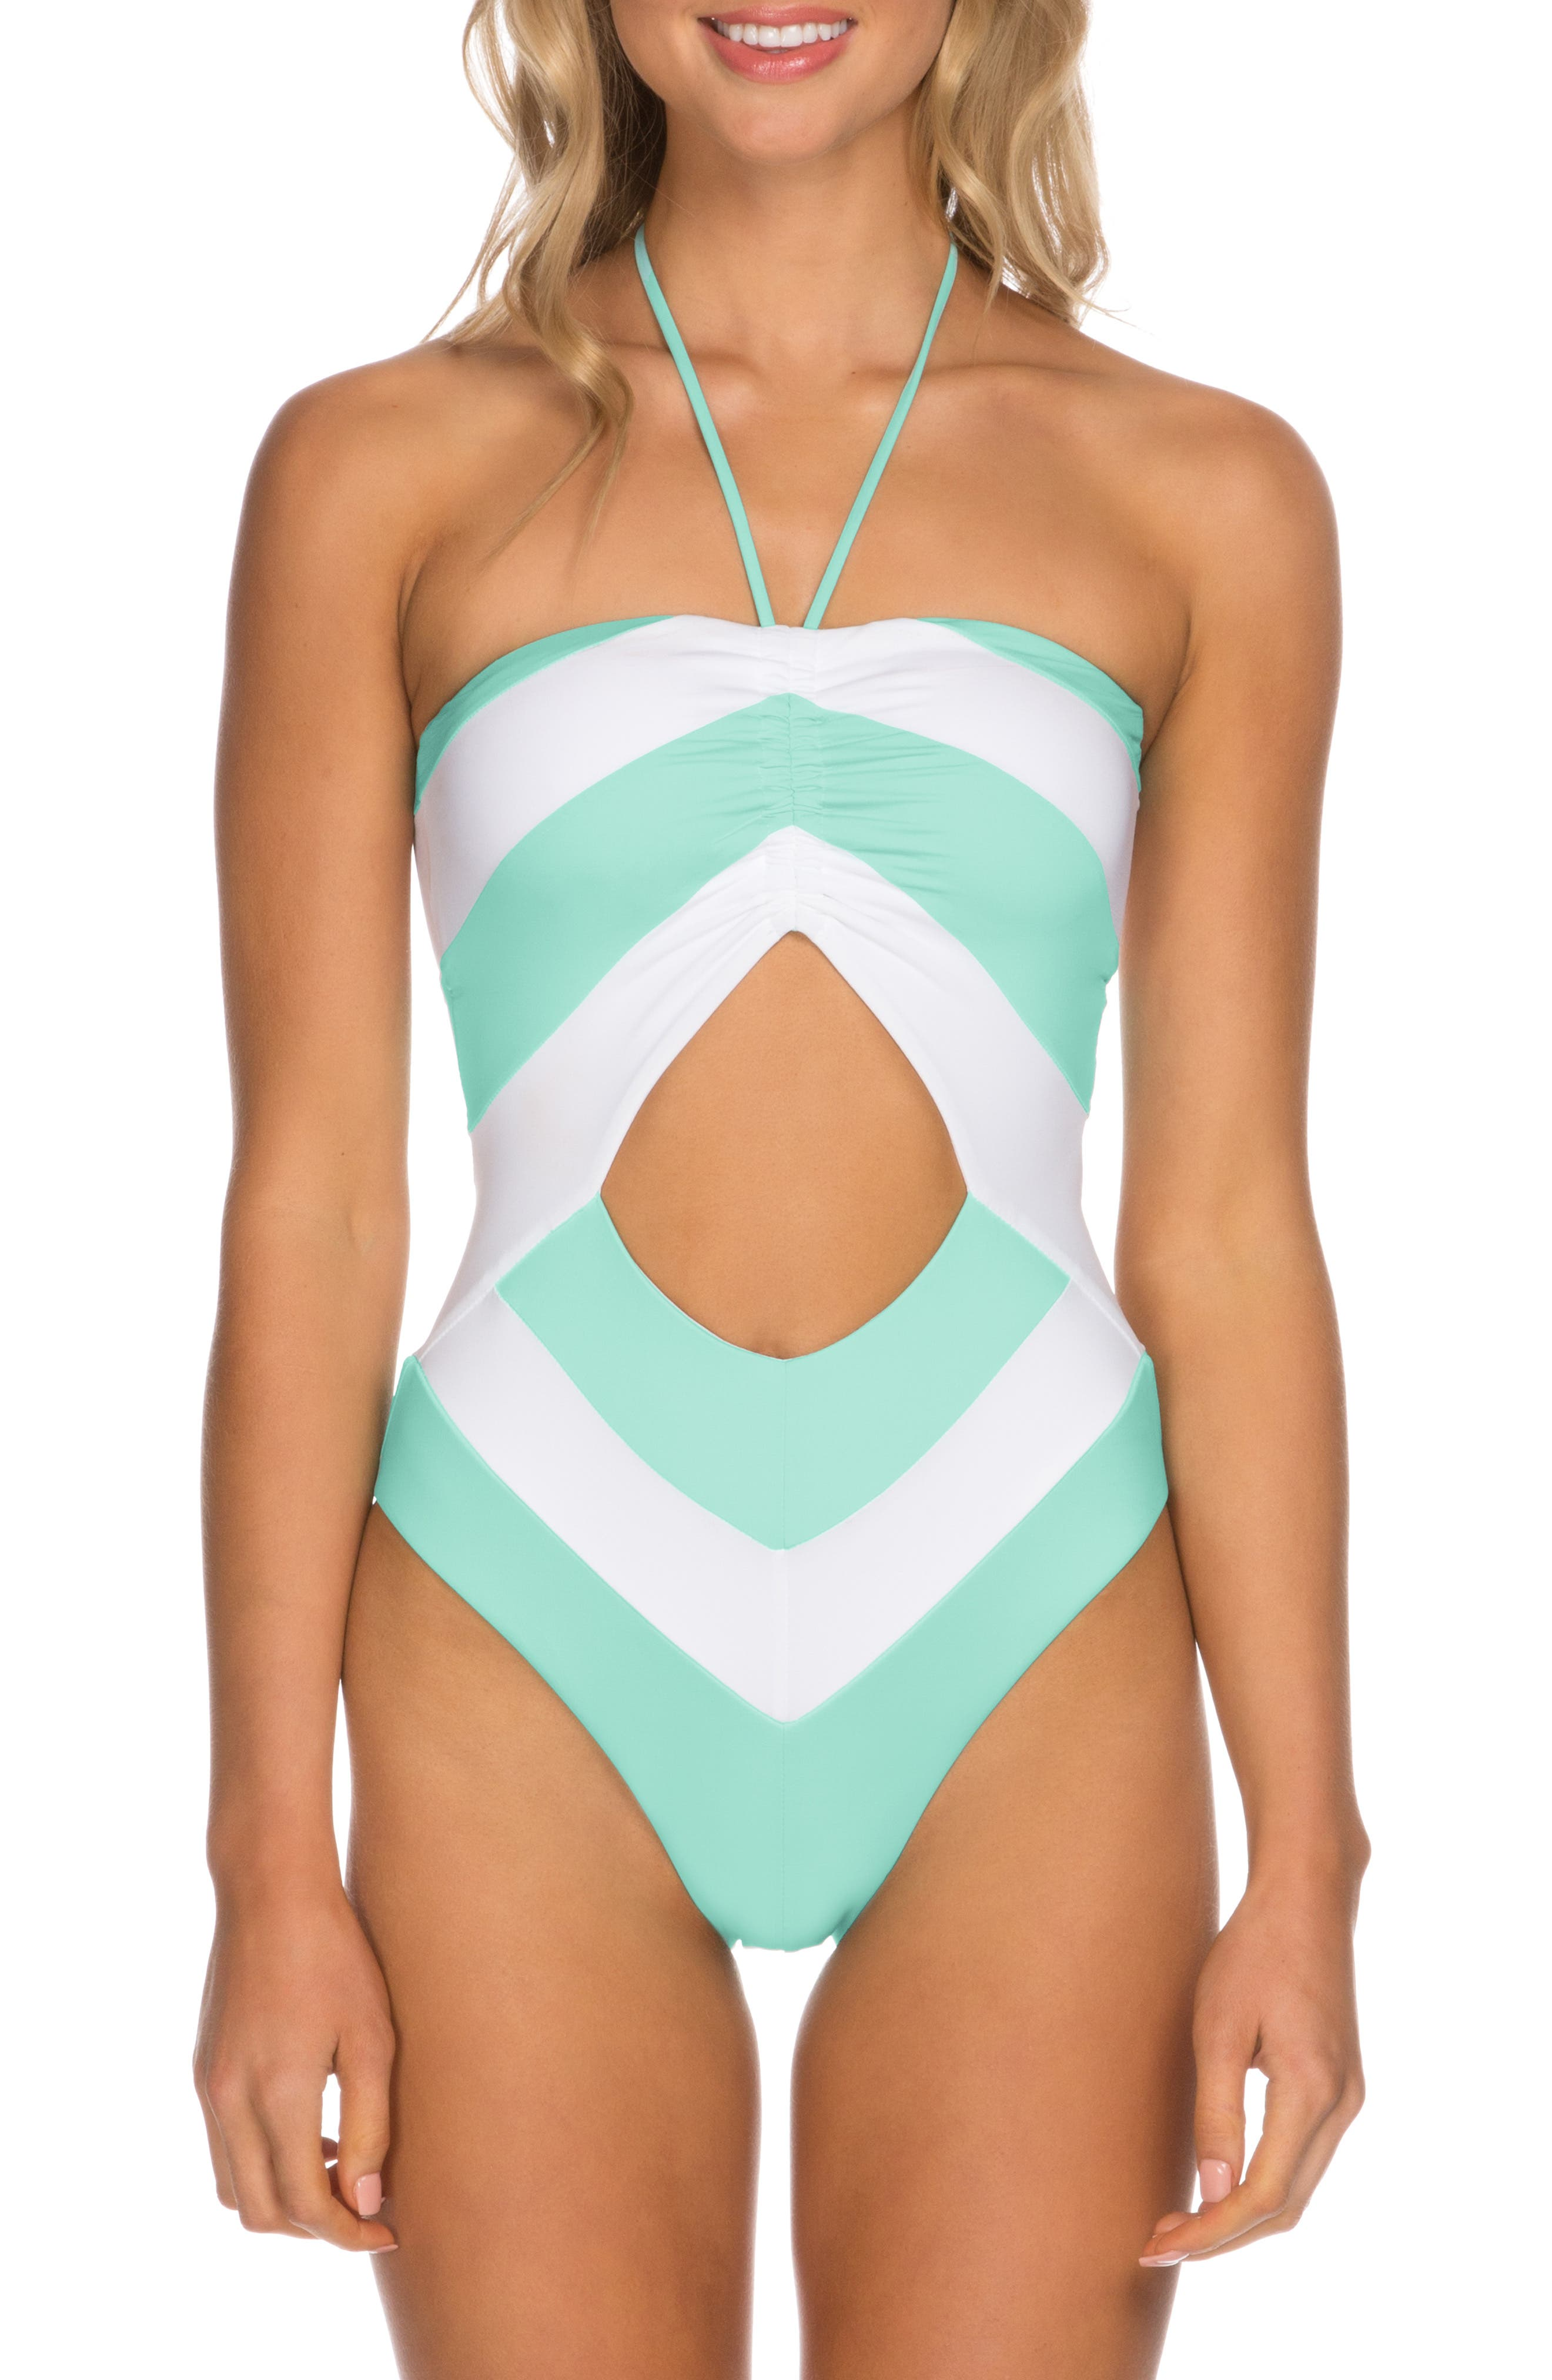 60s Swimsuits, 70s Bathing Suits | Retro Swimwear Womens Isabella Rose Block Party One-Piece Swimsuit $138.00 AT vintagedancer.com